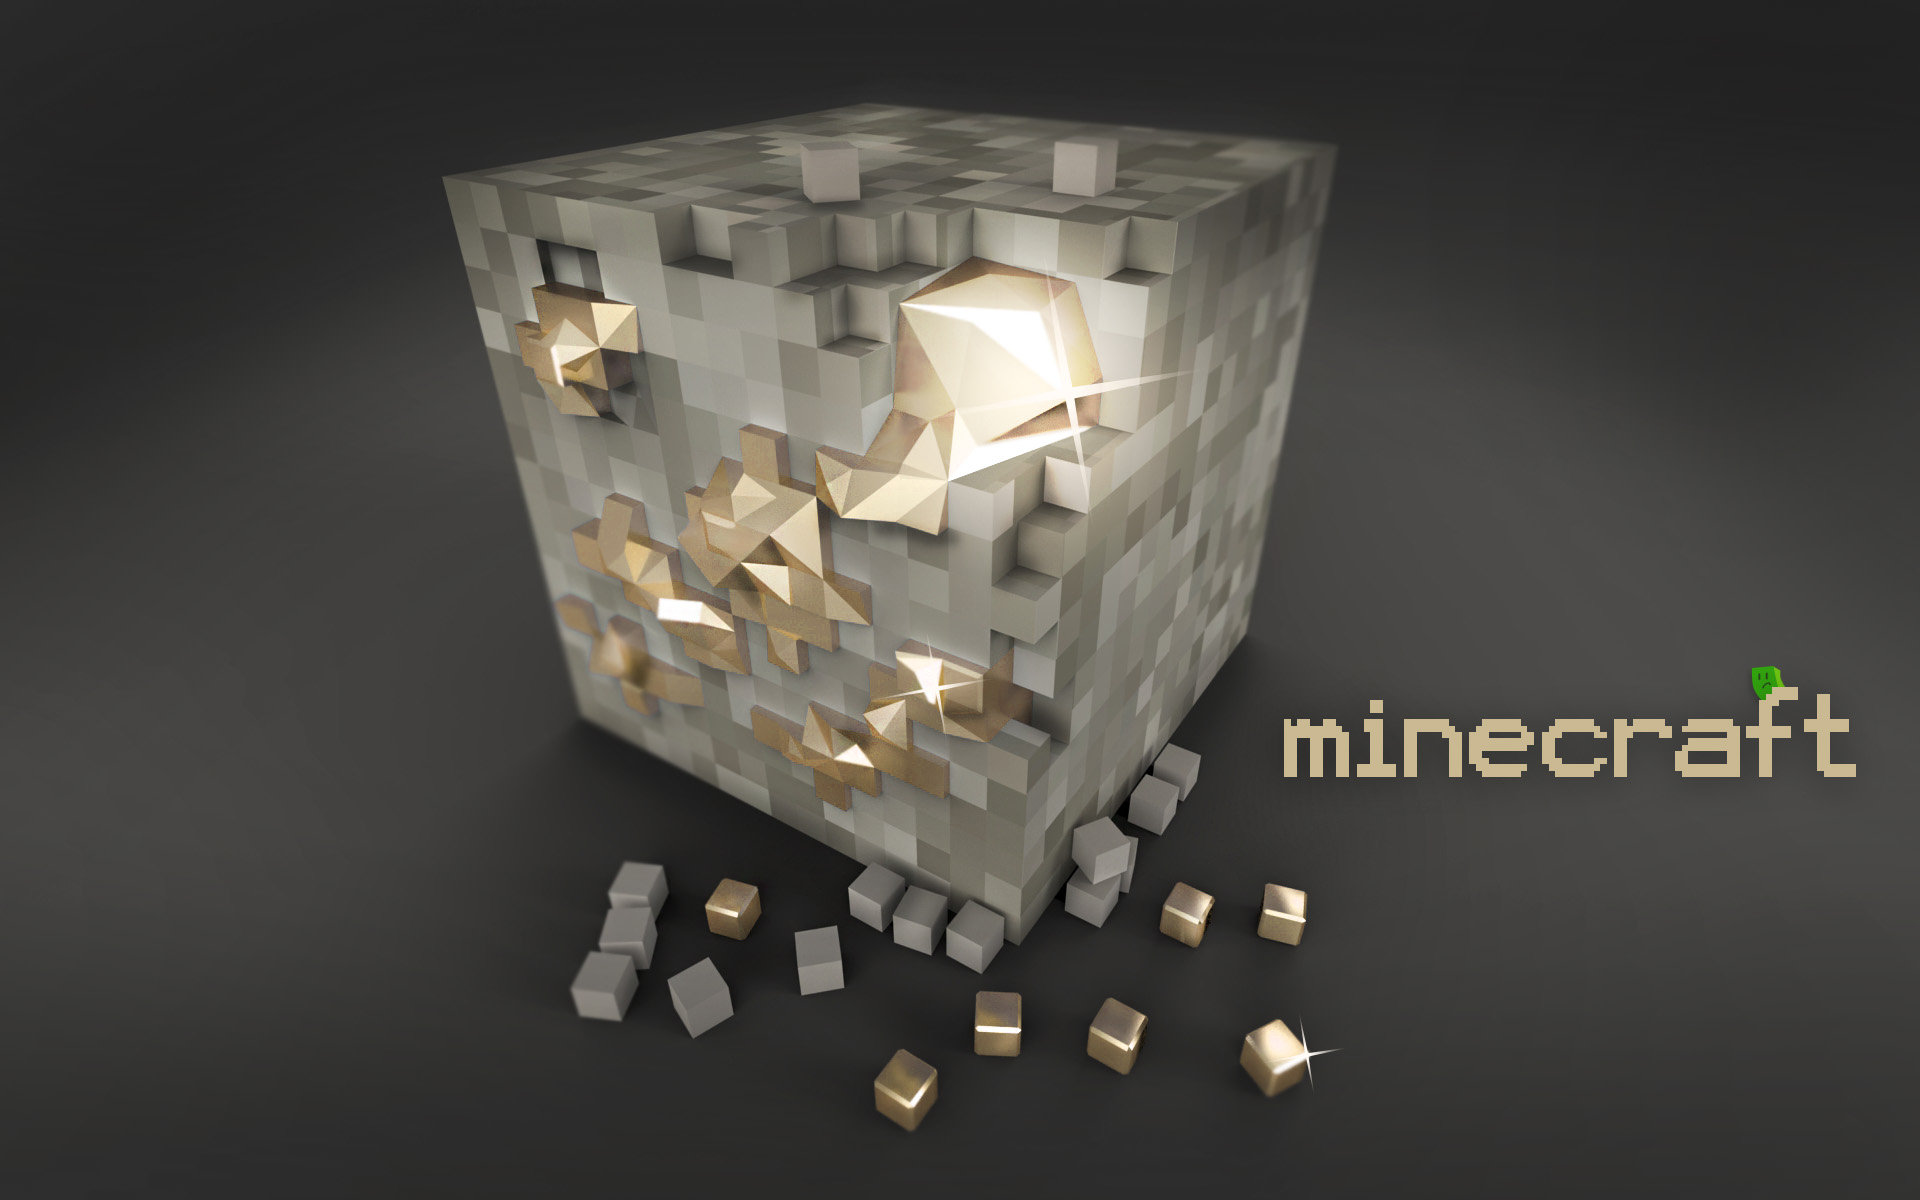 Minecraft reportedly to launch on Android as an Xperia Play timed exclusive